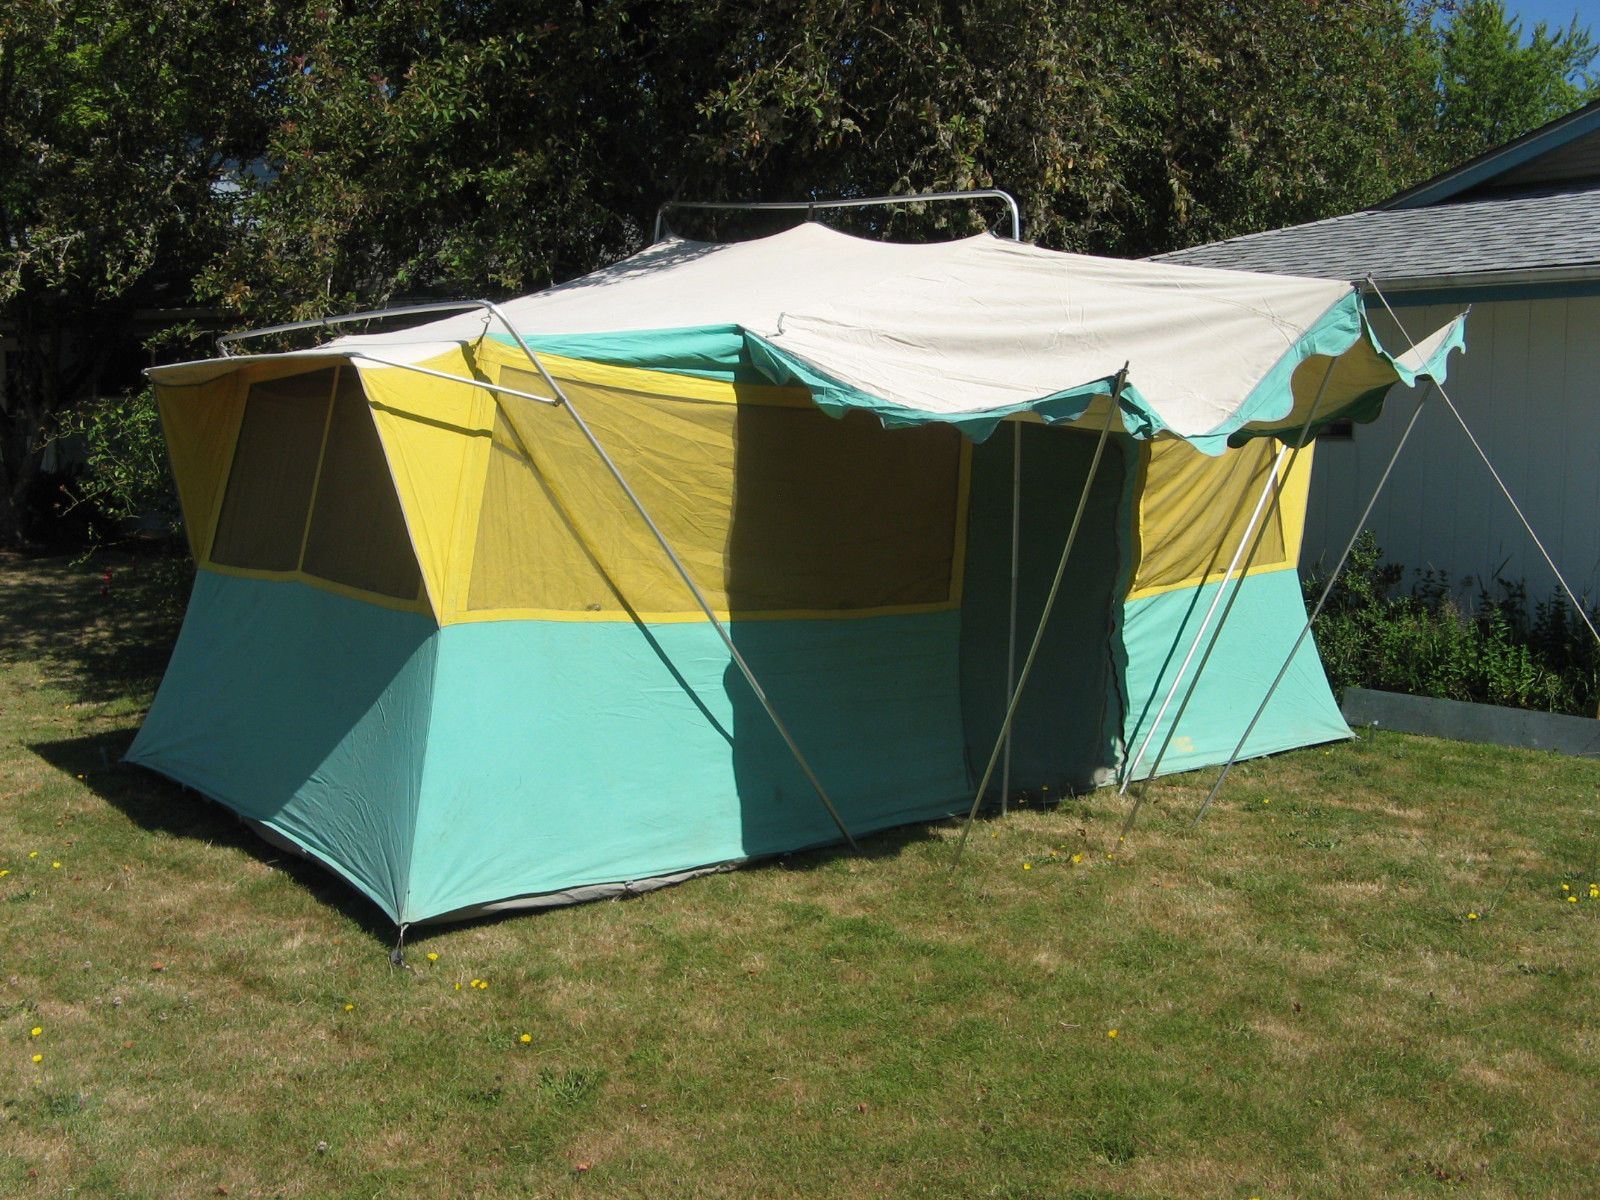 1950s CLASSIC TED WILLIAMS Canvas Cabin Tent lg. 10x17u0027 VINTAGE SEARS HILLARY & 1950s CLASSIC TED WILLIAMS Canvas Cabin Tent lg. 10x17u0027 VINTAGE ...